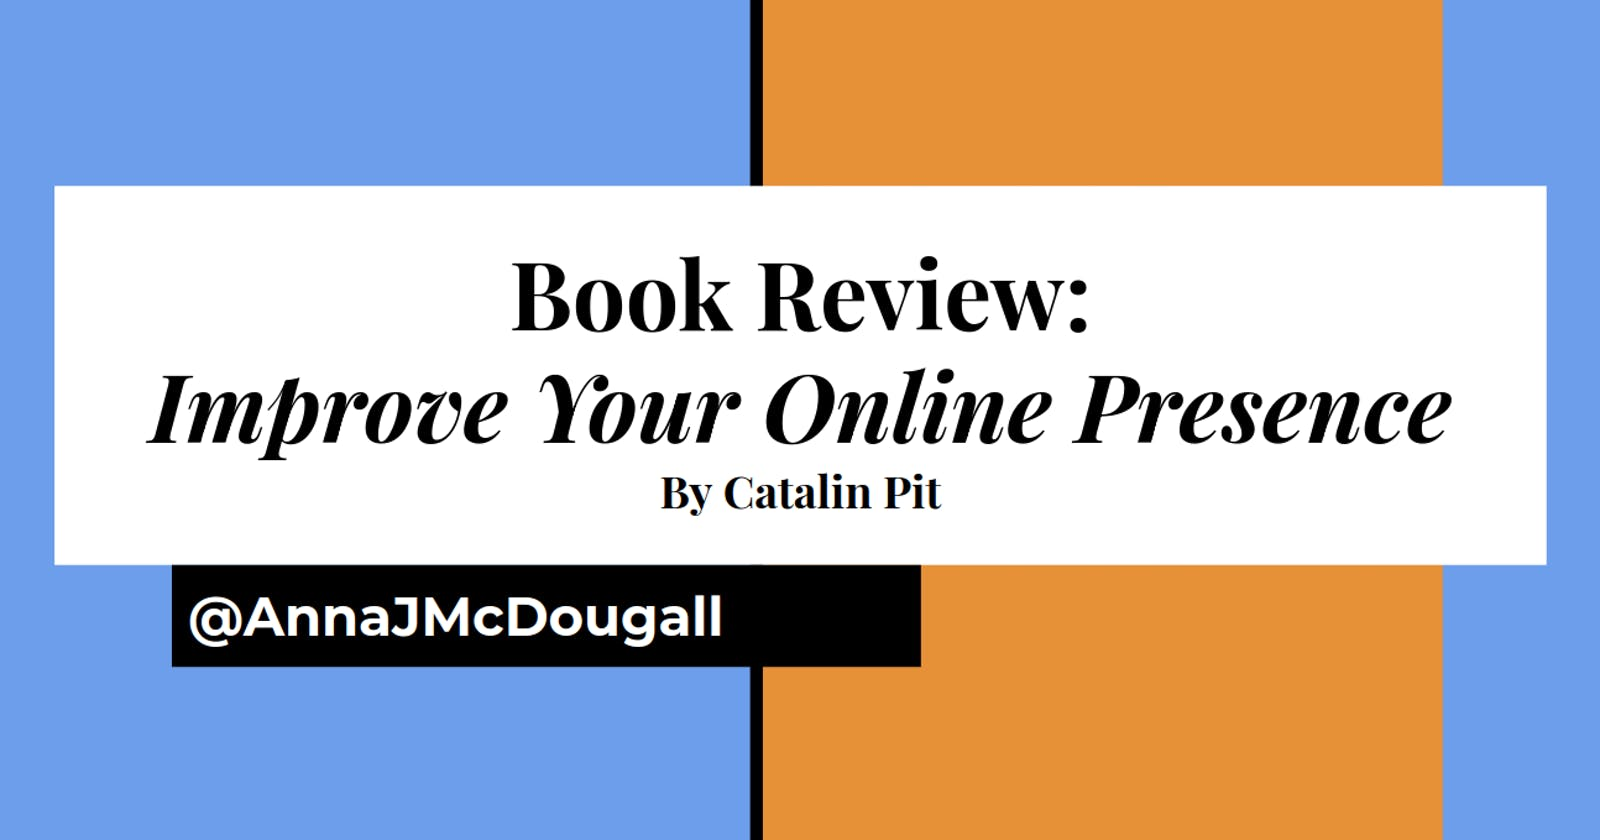 Book Review: Improve Your Online Presence, by Catalin Pit